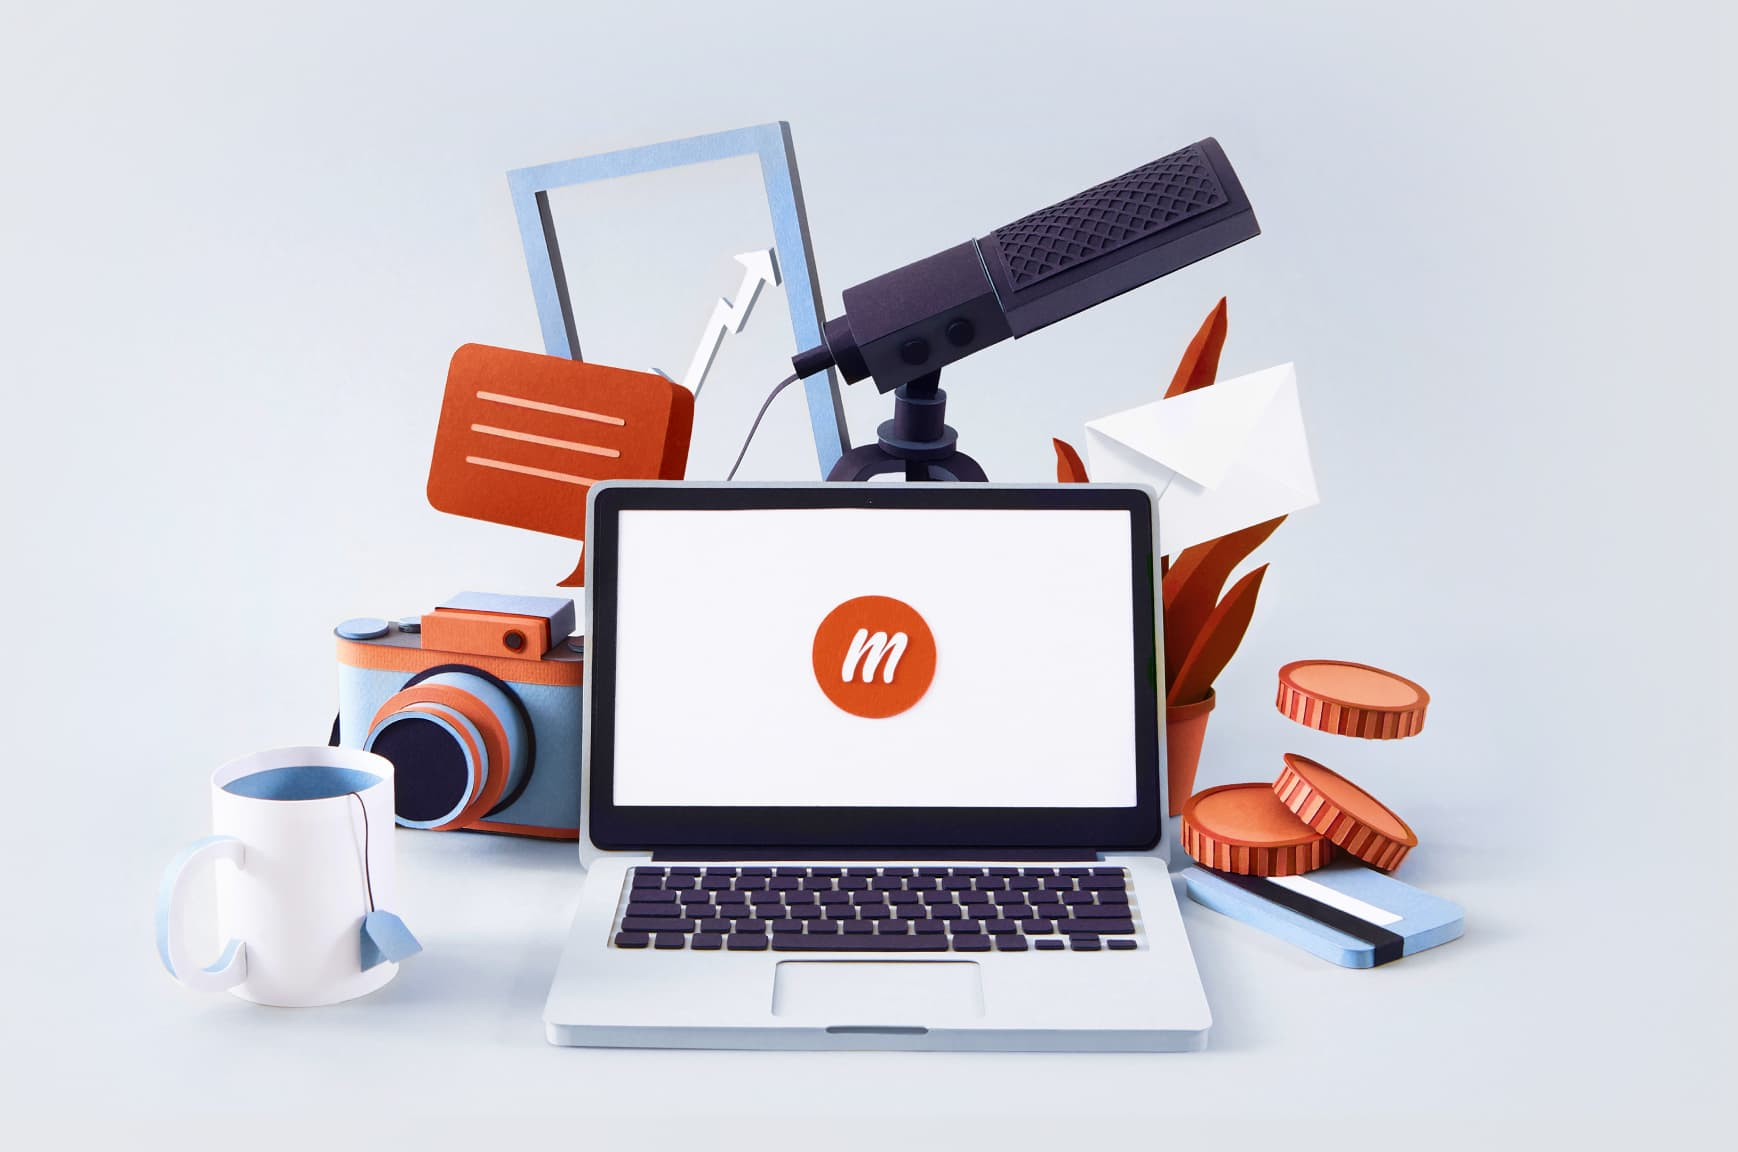 Paper illustrations of a laptop with a memberful logo surrounded by a teacup, camera, microphone, and more.